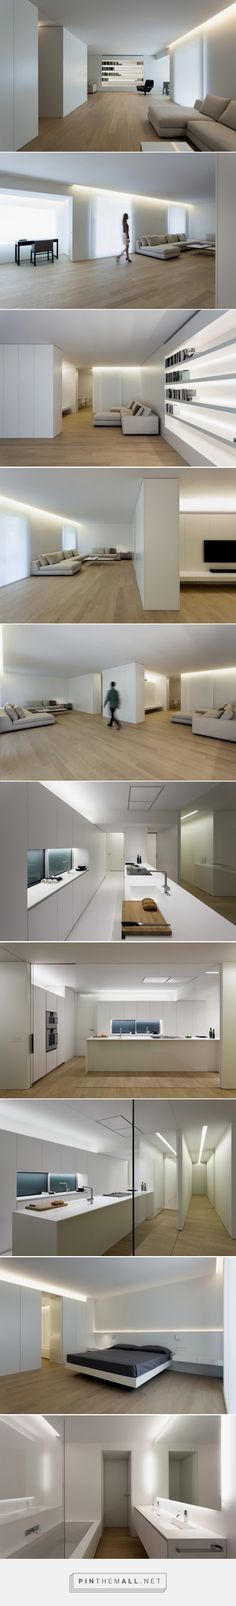 fran silvestre arquitectos renovates antiguo reino house... - a grouped images picture